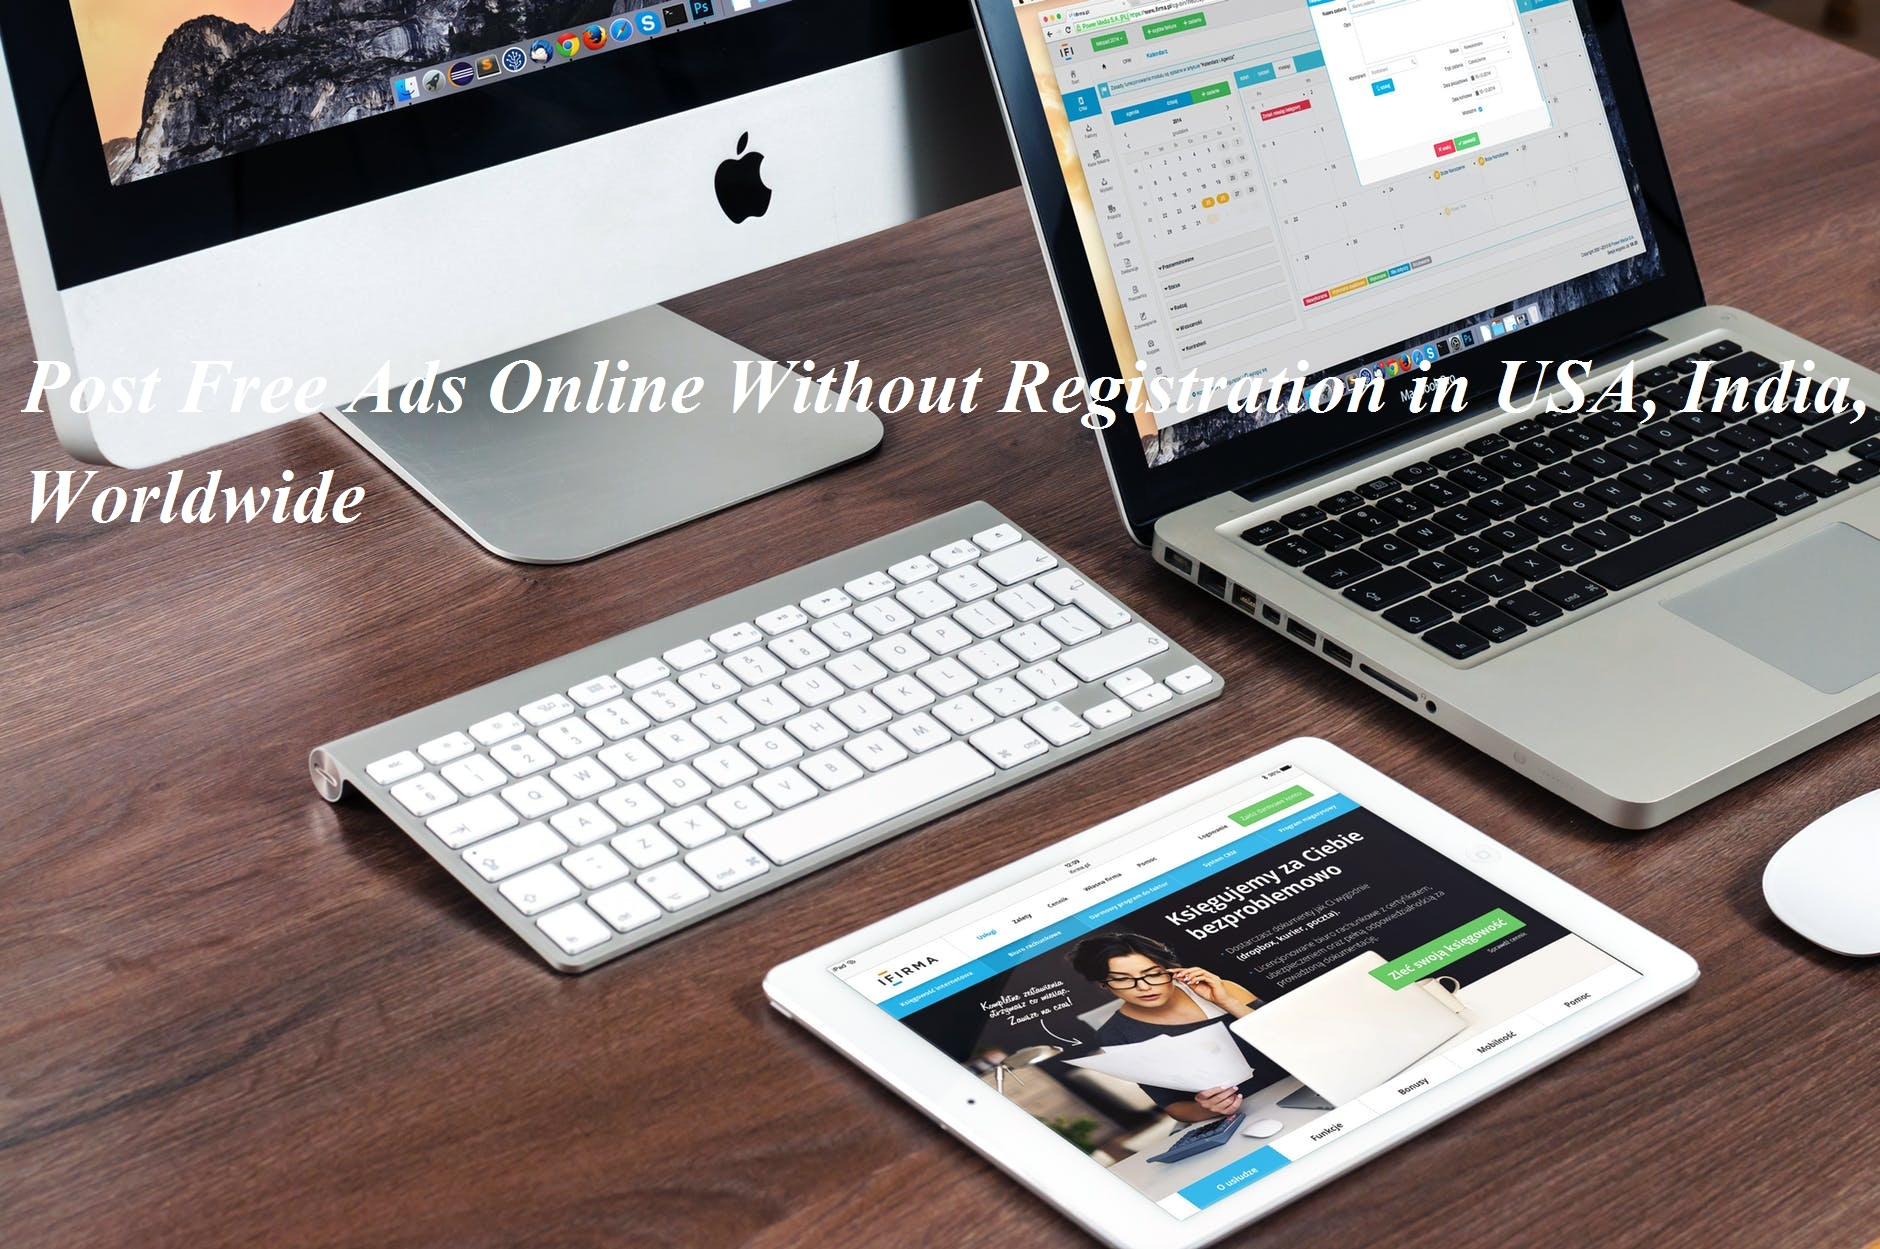 Post Free Ads Online Without Registration